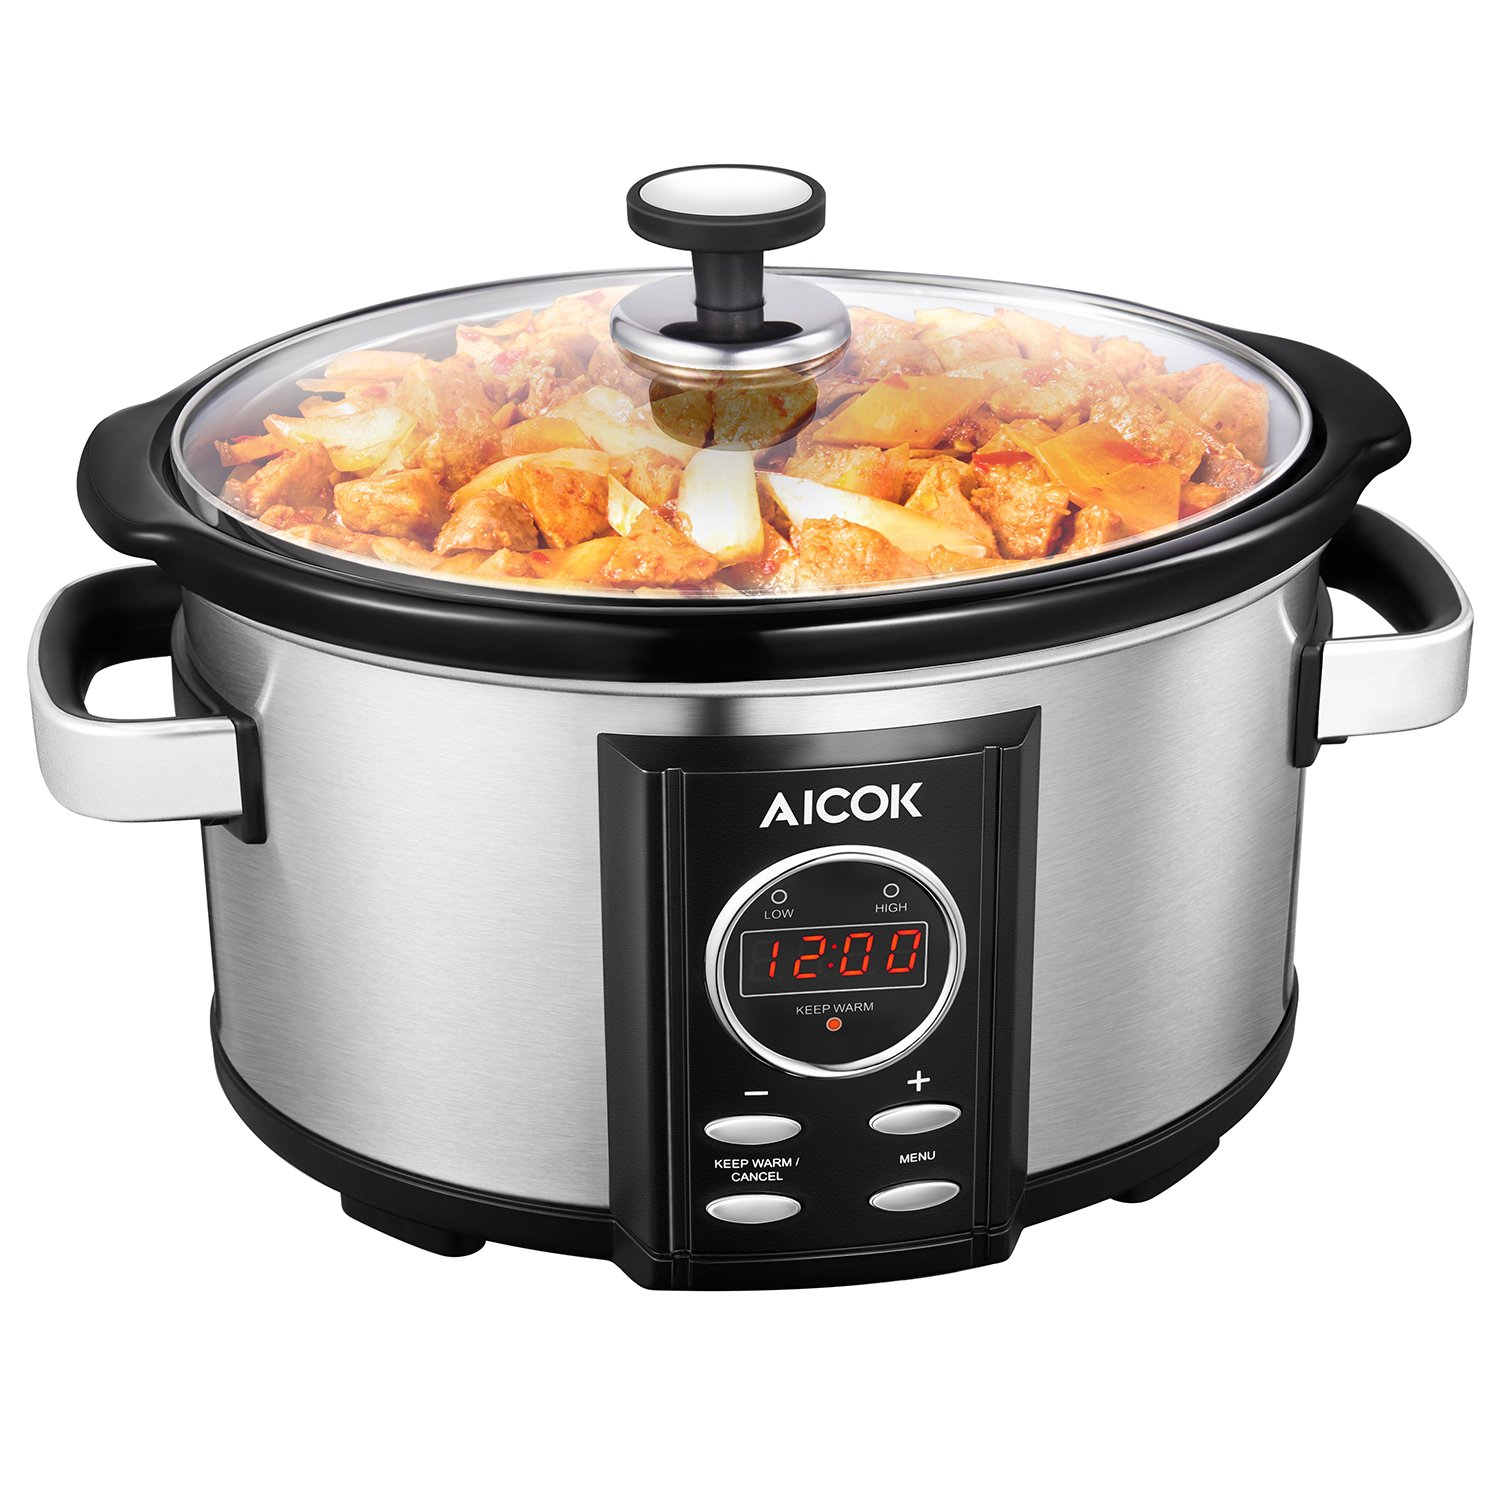 Slow Cooker Aicok 7 Quart Slow Cookers Programmable with 12 Hour Timer Auto Shut Off and Instant Food Warmer, Anti-scalding Handle and Oval Nonstick Removable Crock Stoneware,Stainless Steel